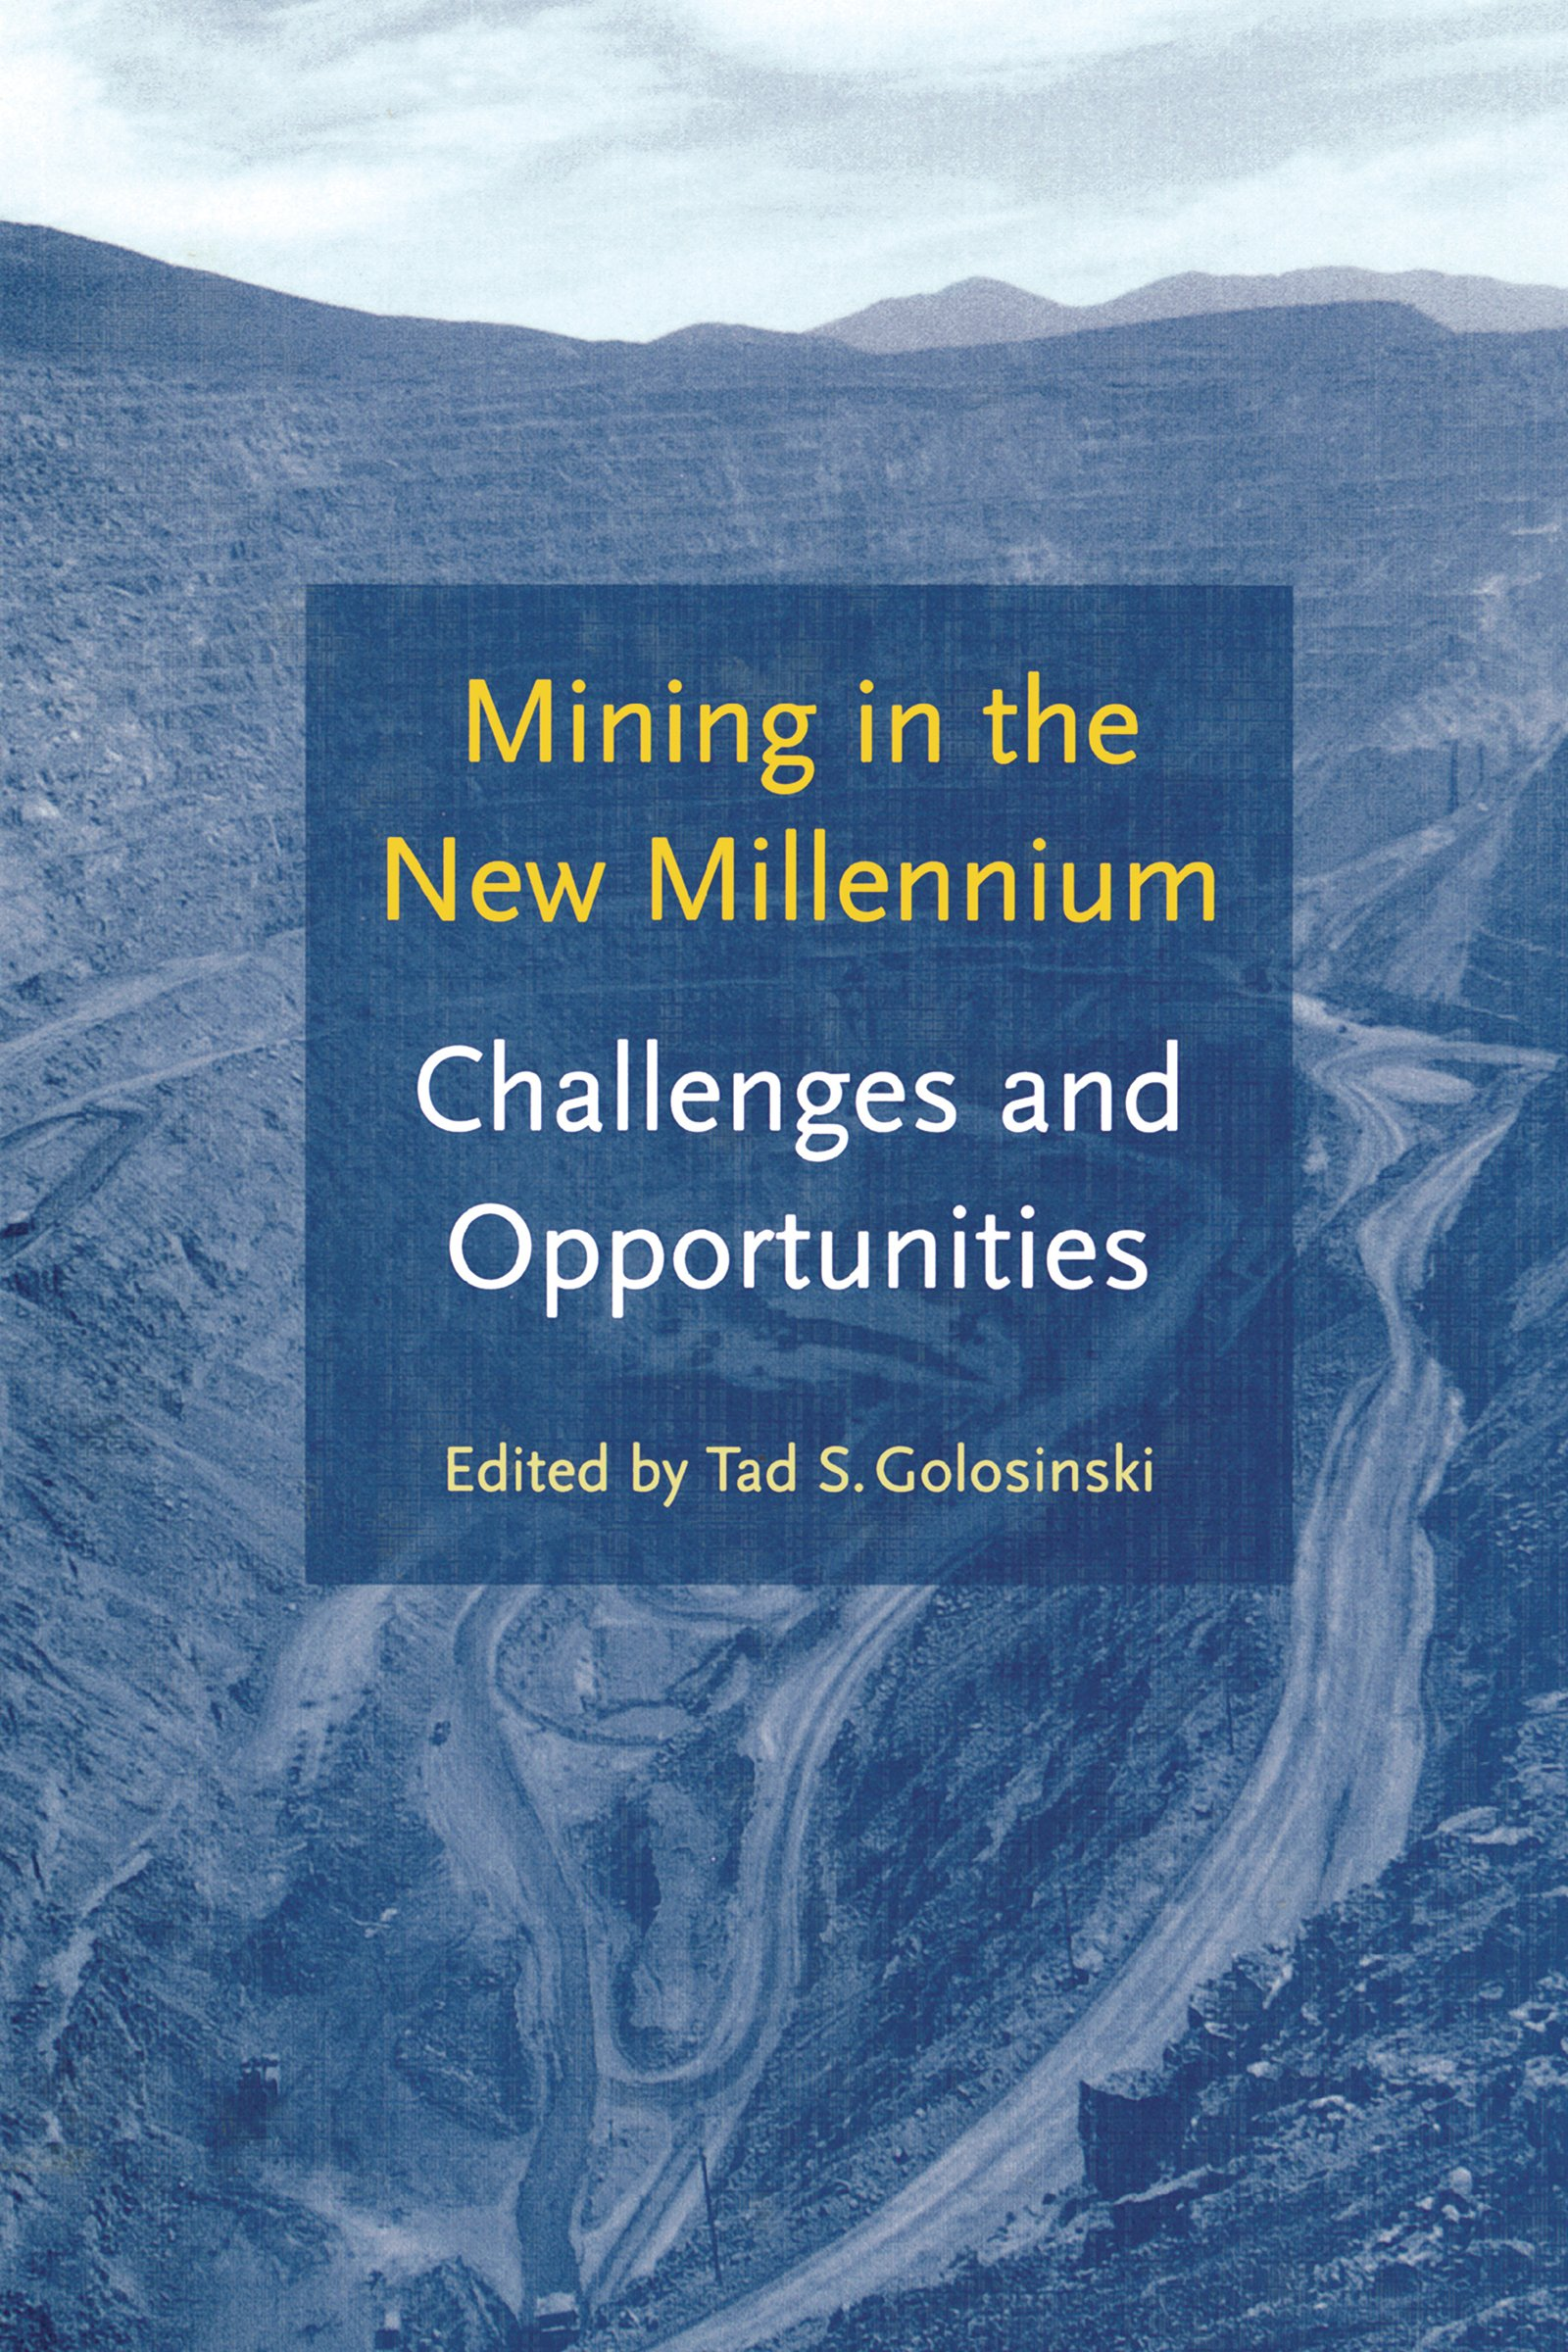 Mining in the New Millennium - Challenges and Opportunities